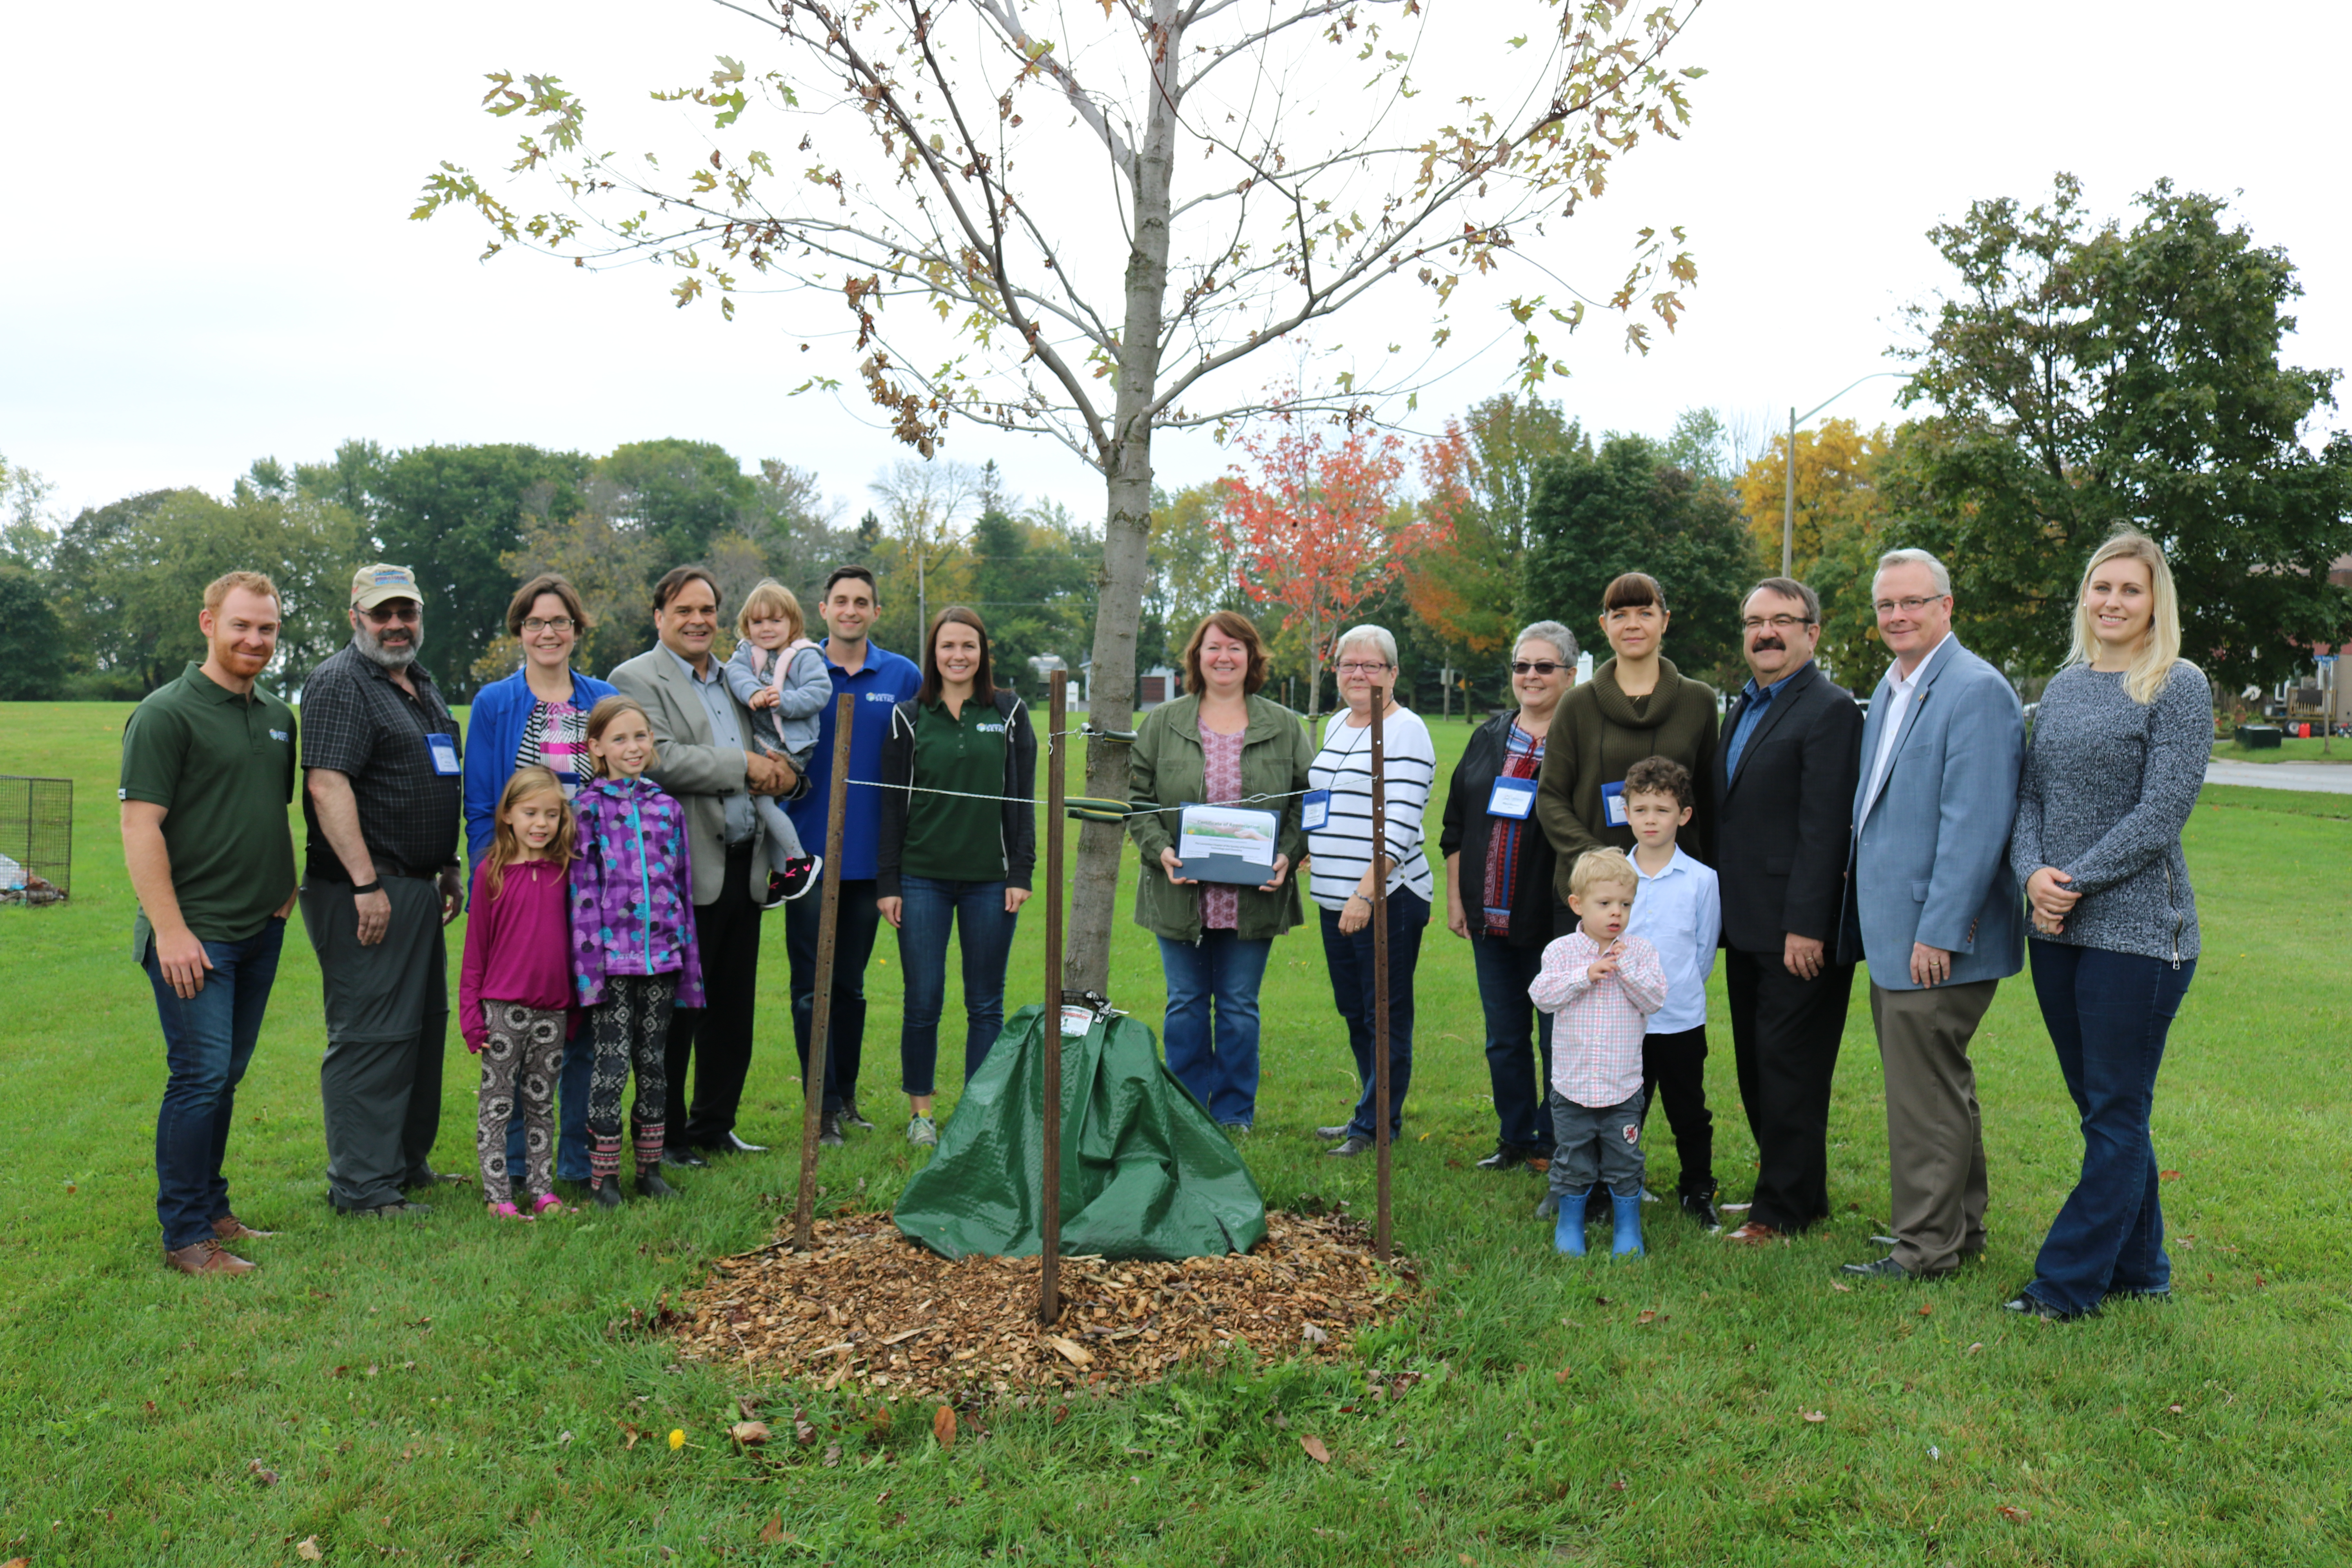 Included in the Photo: Mayor, John Henry, Regional and City Councillor Bob Chapman, City Councillor Gail Bates, City staff, members of the Oshawa Environmental Advisory Committee and representatives from the Laurentian Chapter of the Society of Environmental Toxicology and Chemistry.